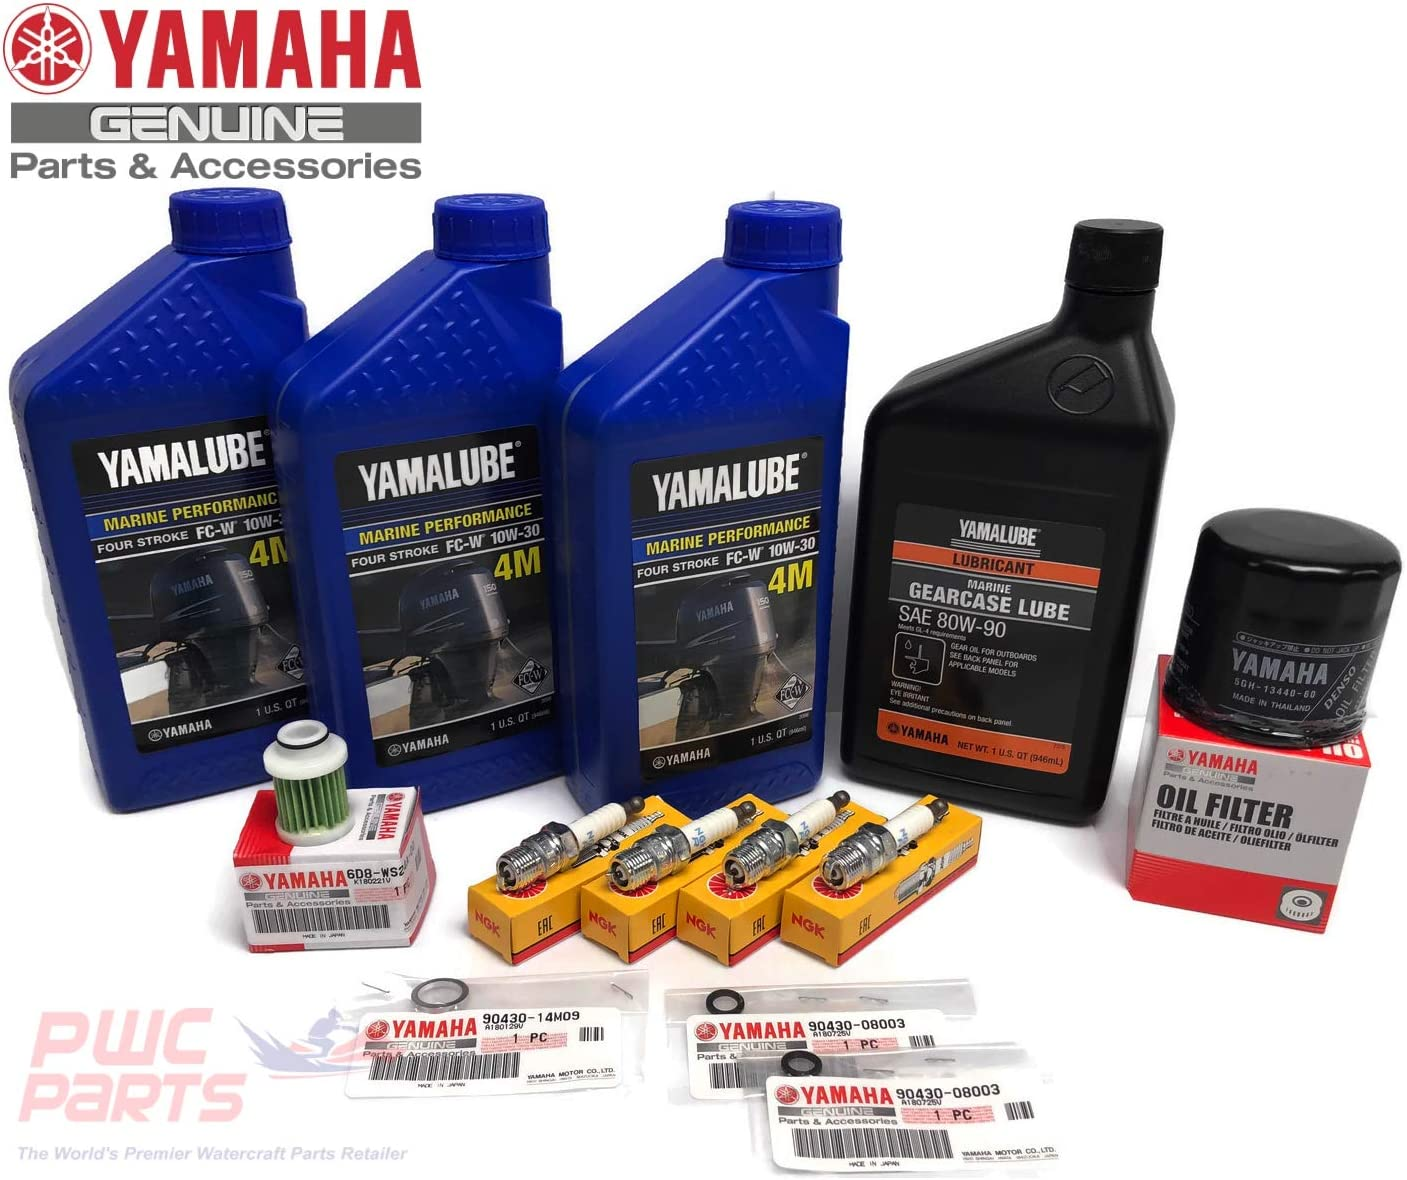 YAMAHA OEM 2010+ F70 F70LA Outboard Oil Change 10W30 FC 4M Lower Unit Gear Lube Drain Fill Gasket Spark Plugs NGK LKR7E Primary Fuel Filter Maintenance Kit